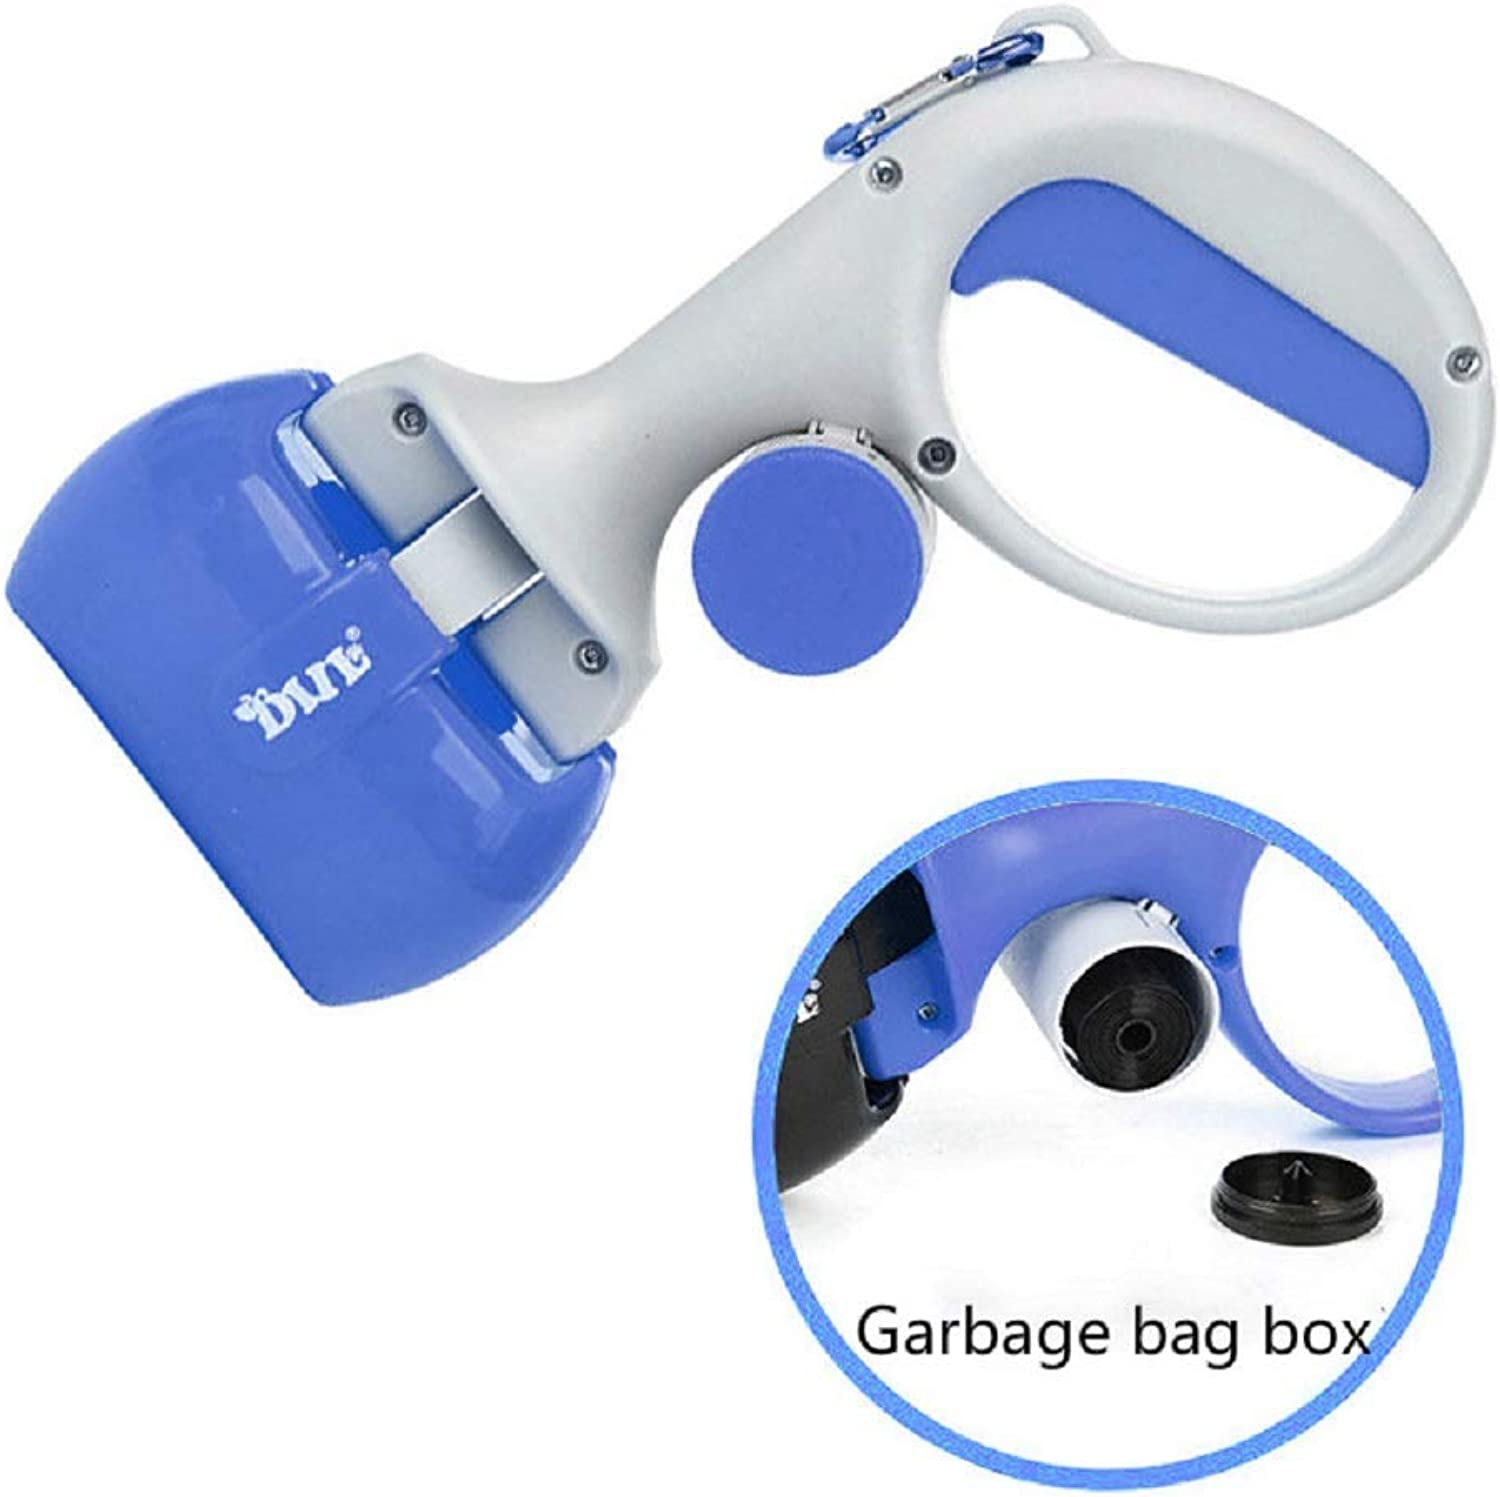 1 PCS Pet Picking Device Combo Toilet Garbage Bag Convenient pet Dog Dog Cleaning Supplies AP9261712 (color   bluee)